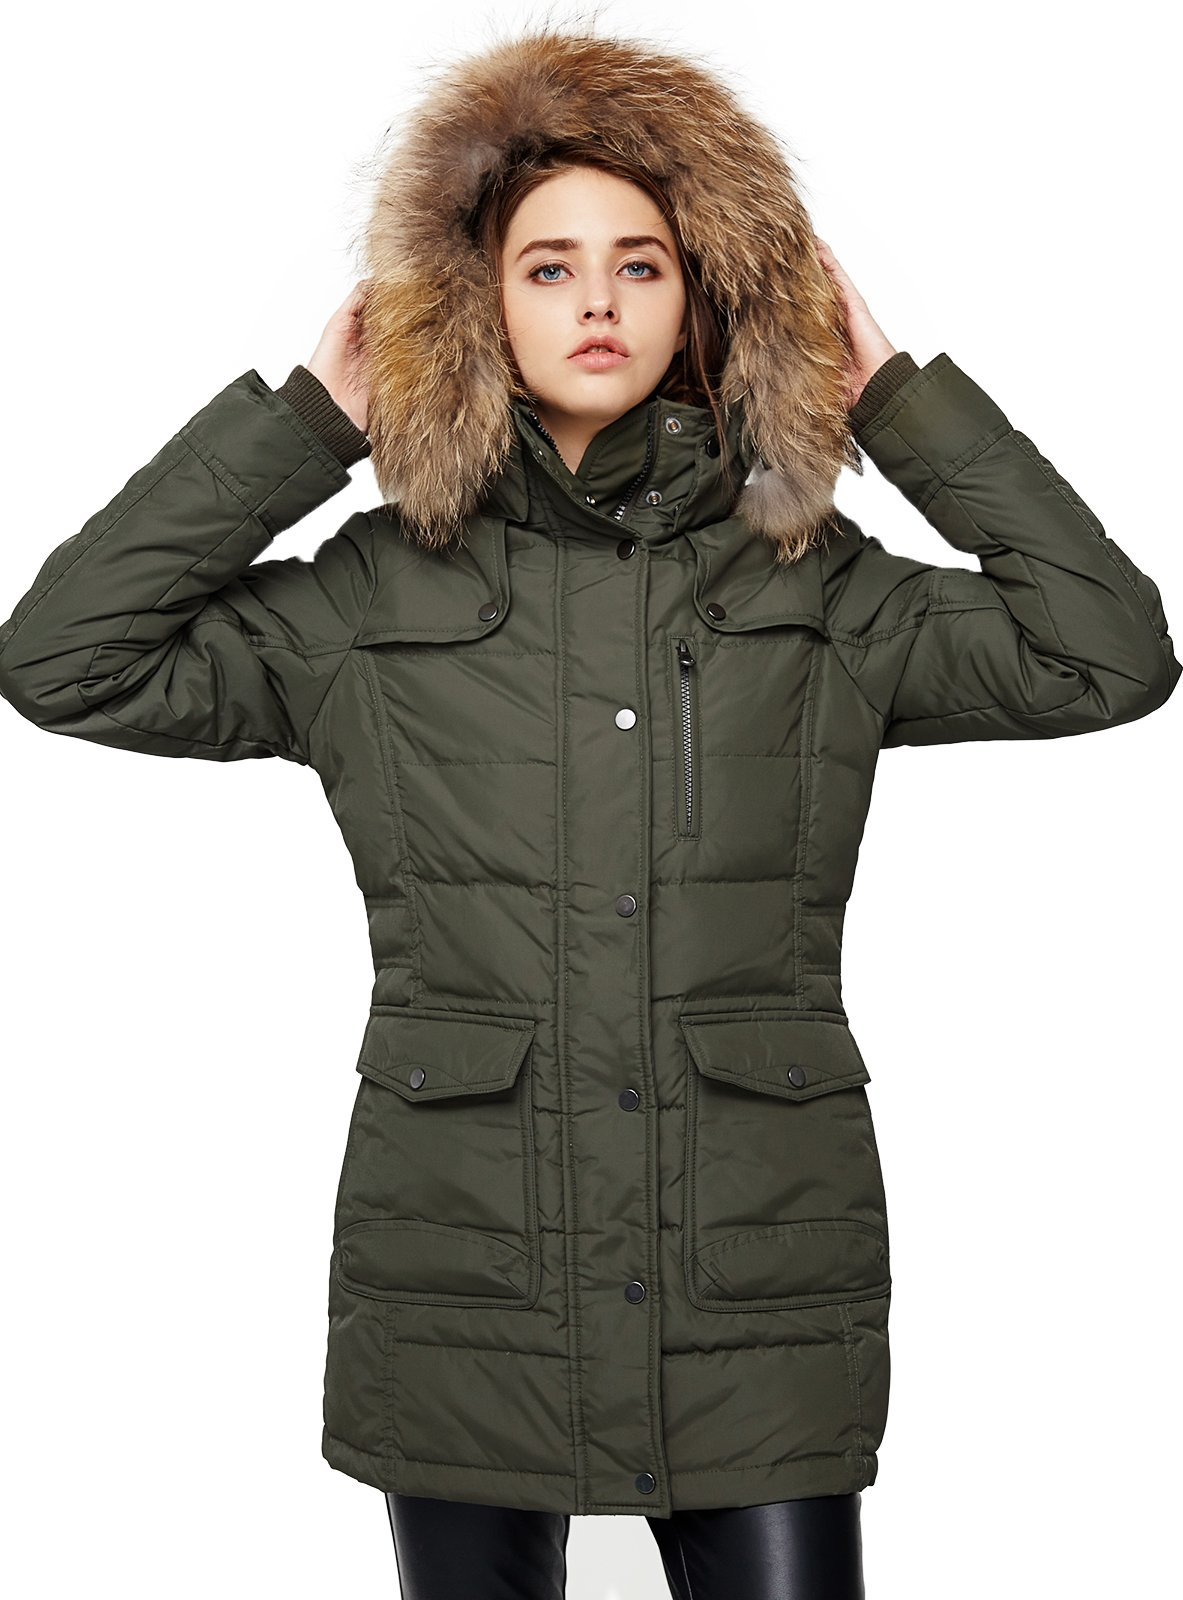 Escalier Women`s Down Coat With Raccoon Fur Hooded Winter Jacket Army Green XL